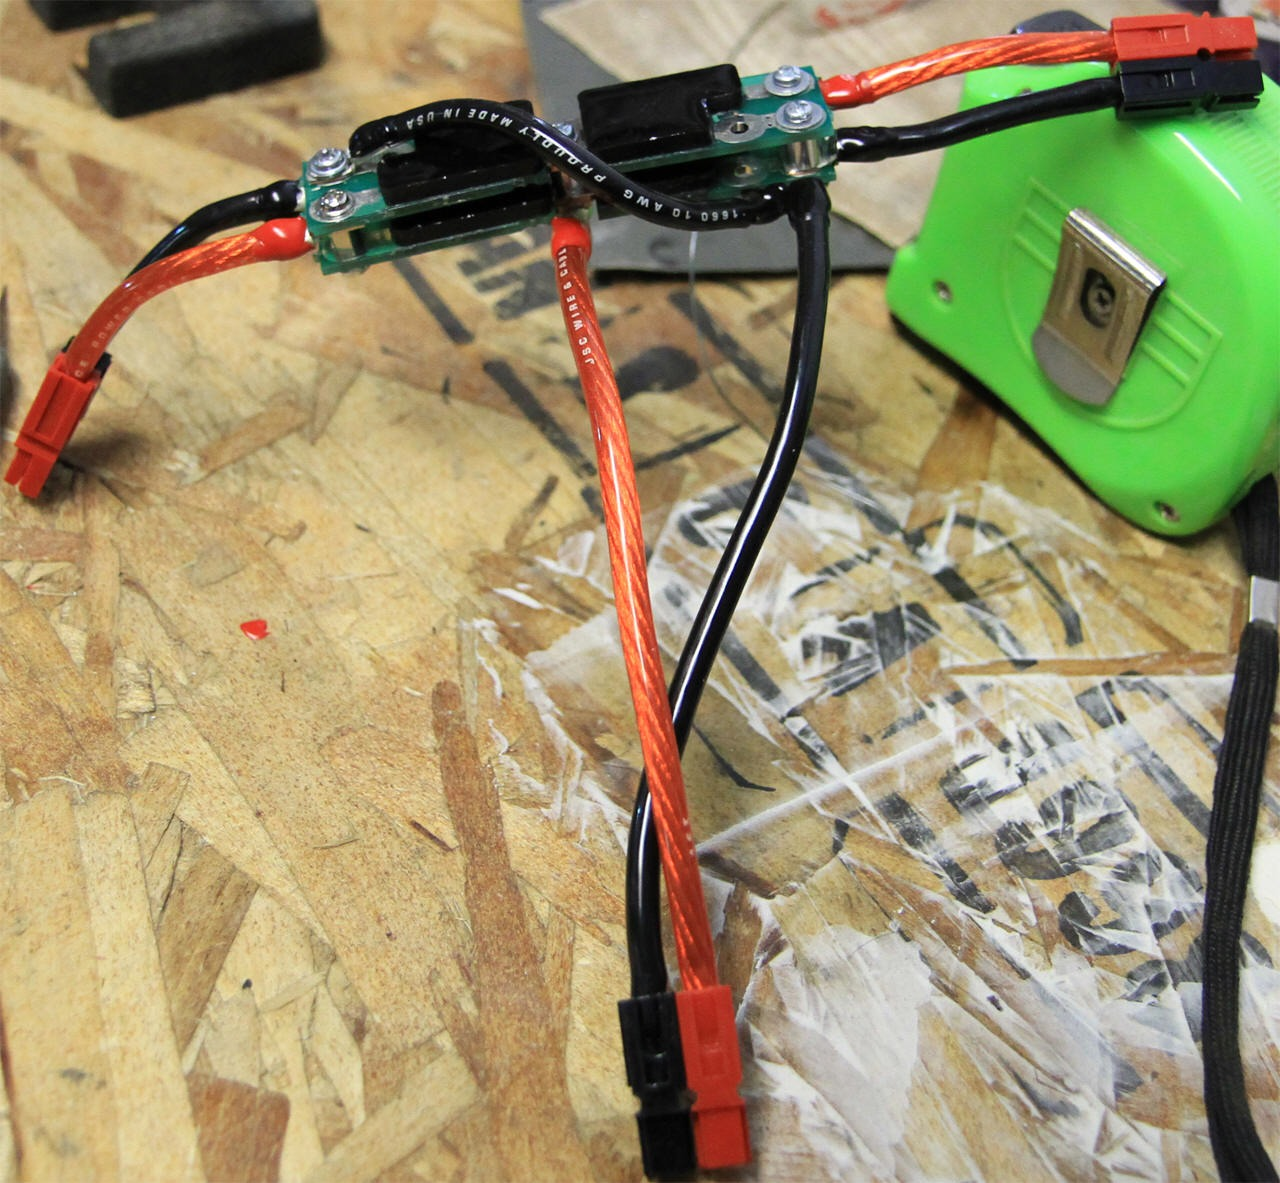 Giant Transend Lx Keeper Trailer Wiring Harness It Worked Pretty Good And I Like My New 10awg Noodle Wire Much Easier To Work With This Is A Great Diode Very Low Voltage Drop Its